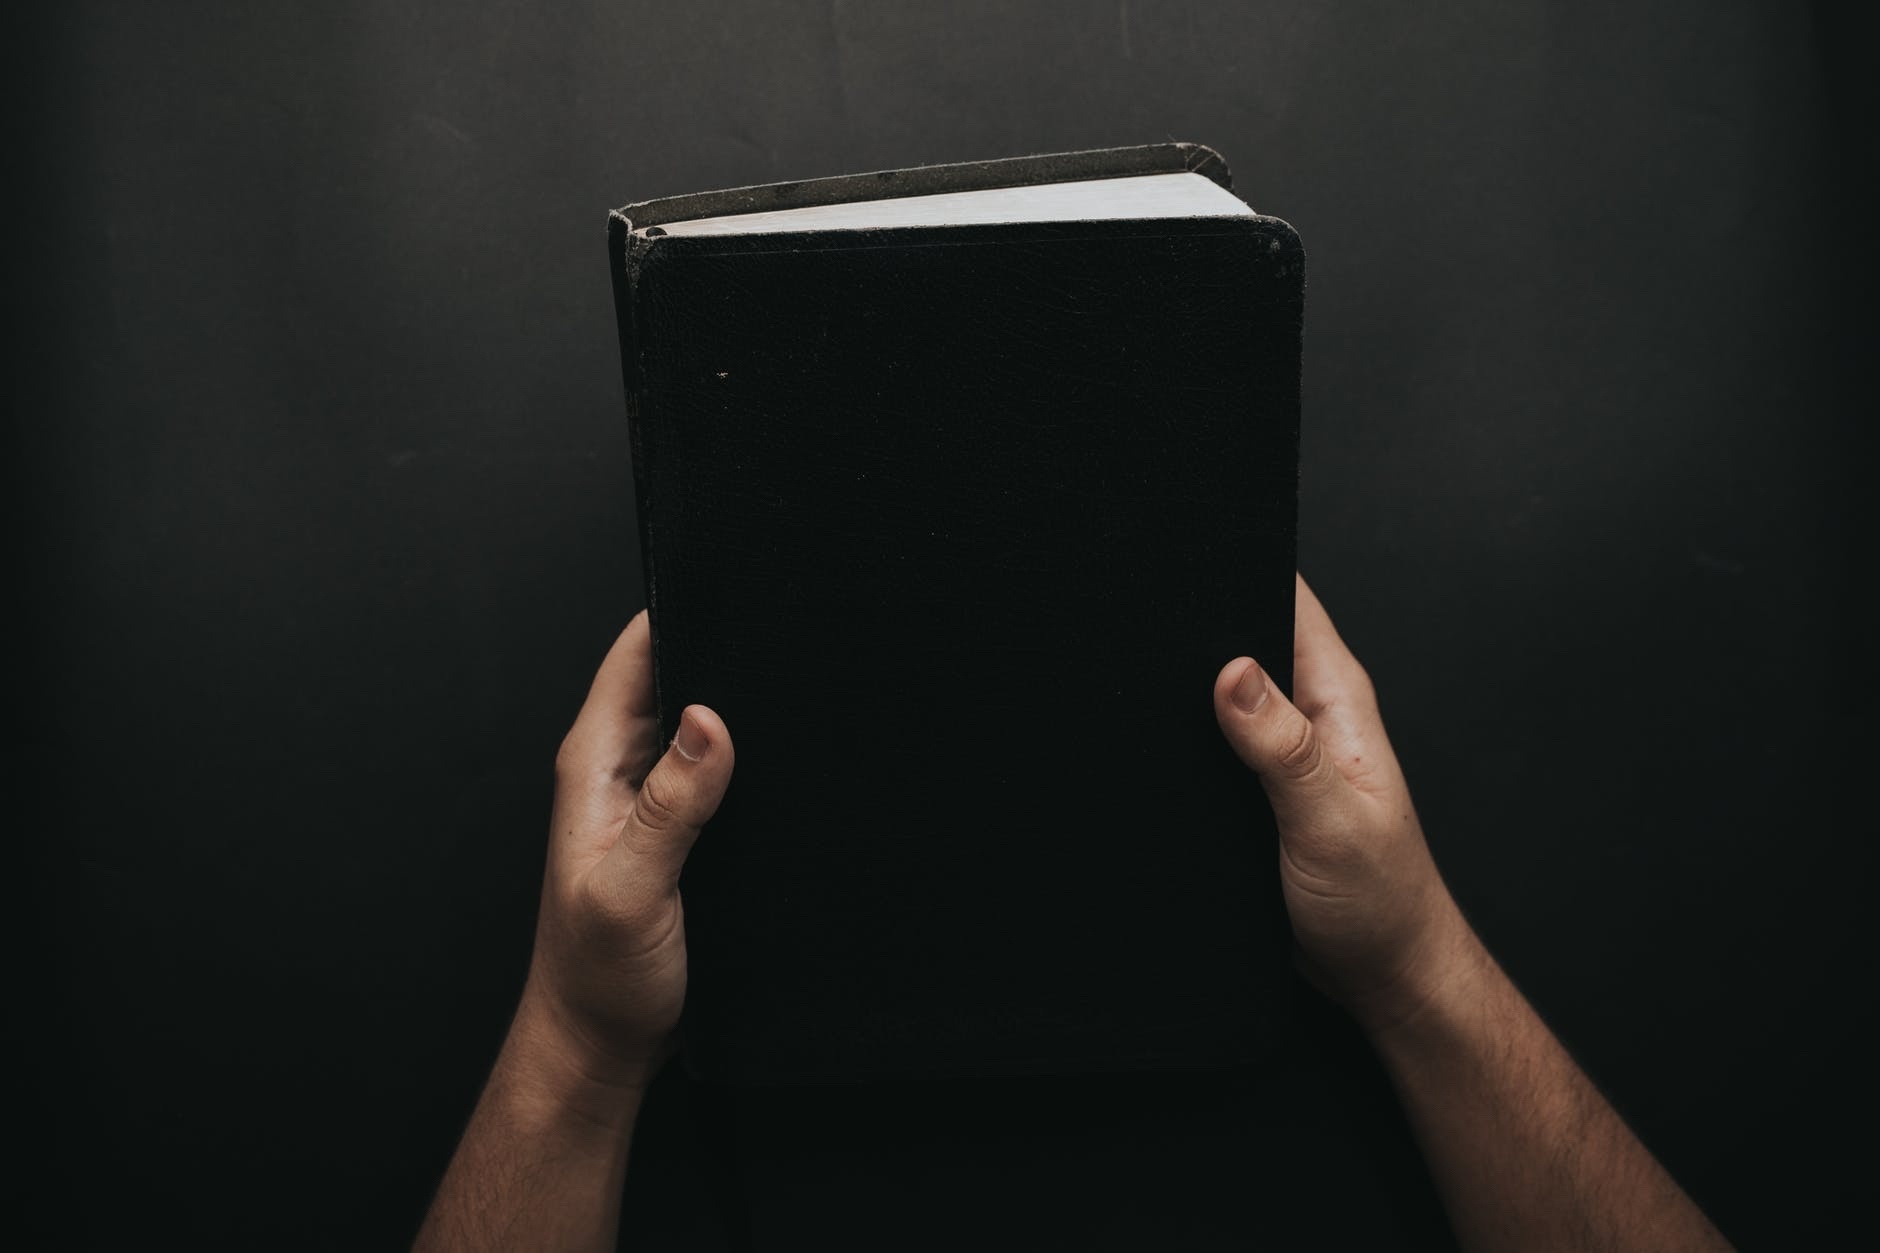 Texas Judge Gifts Bible, Atheist At Uproar - A Texas judge gives a Bible as a gift and to no surprise an atheist group is at an uproar.